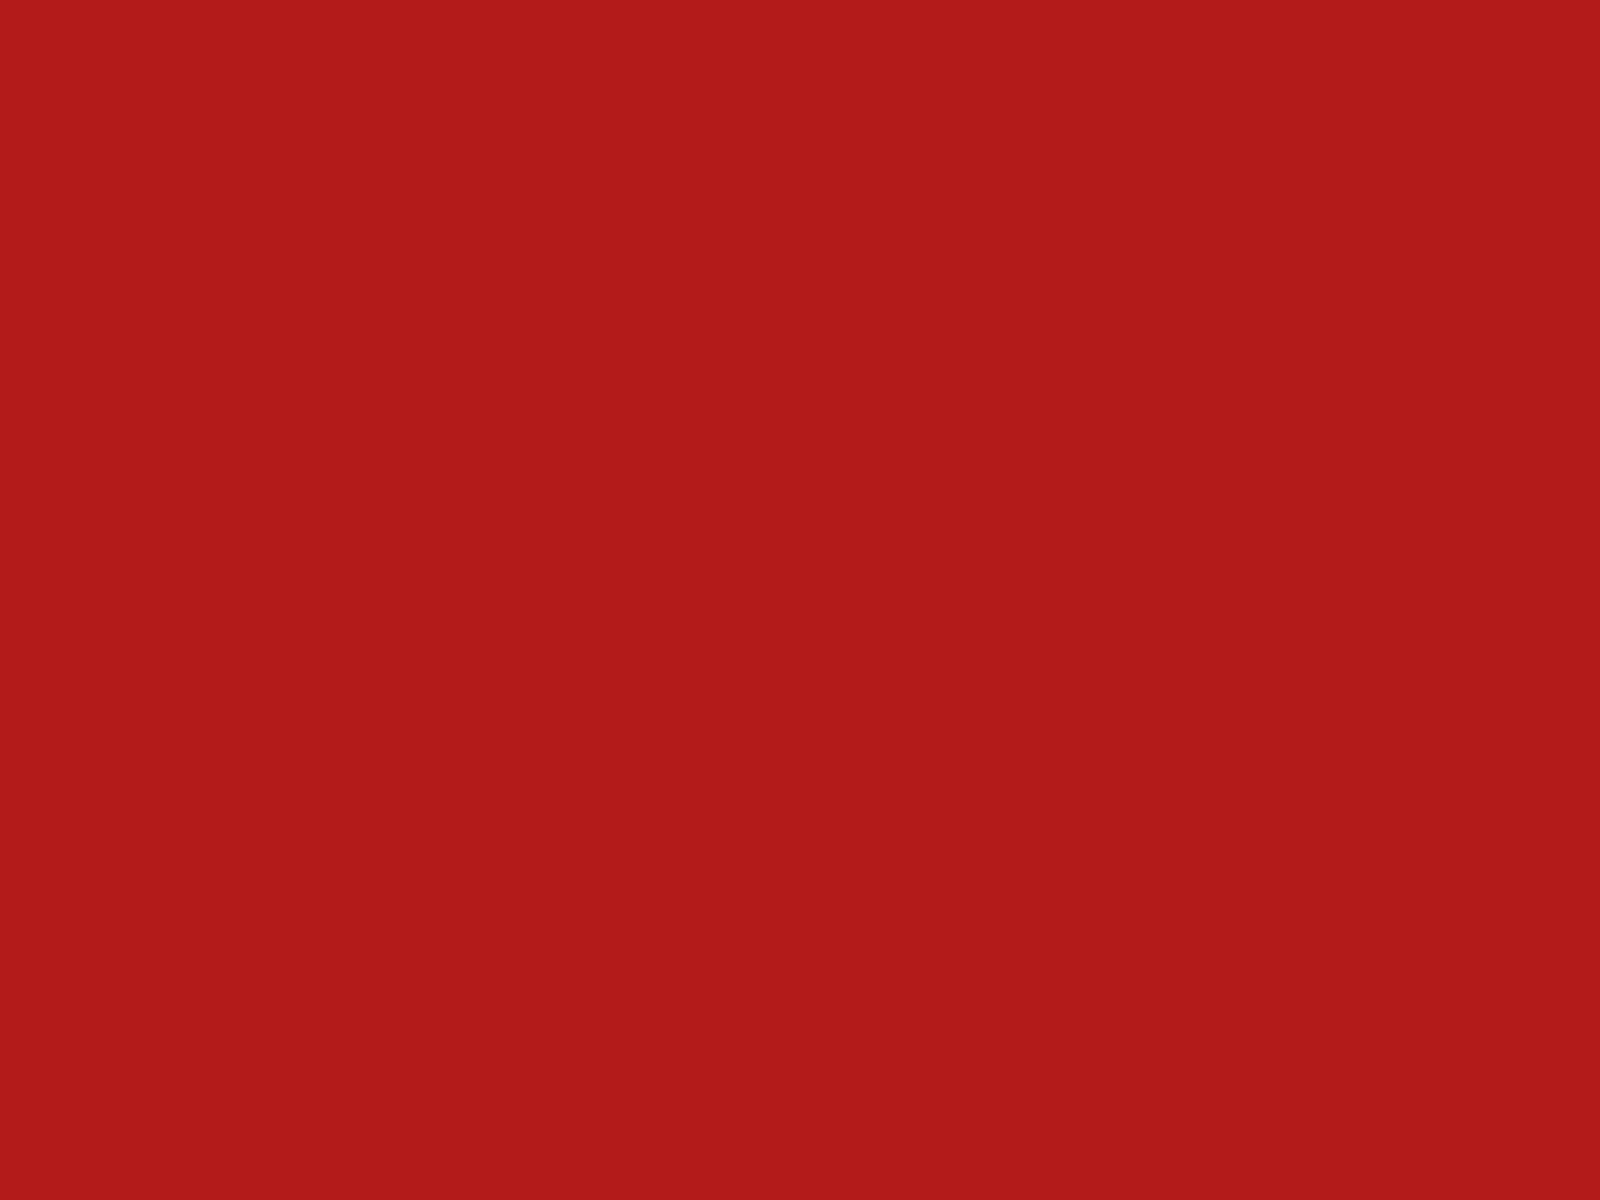 1600x1200 Cornell Red Solid Color Background